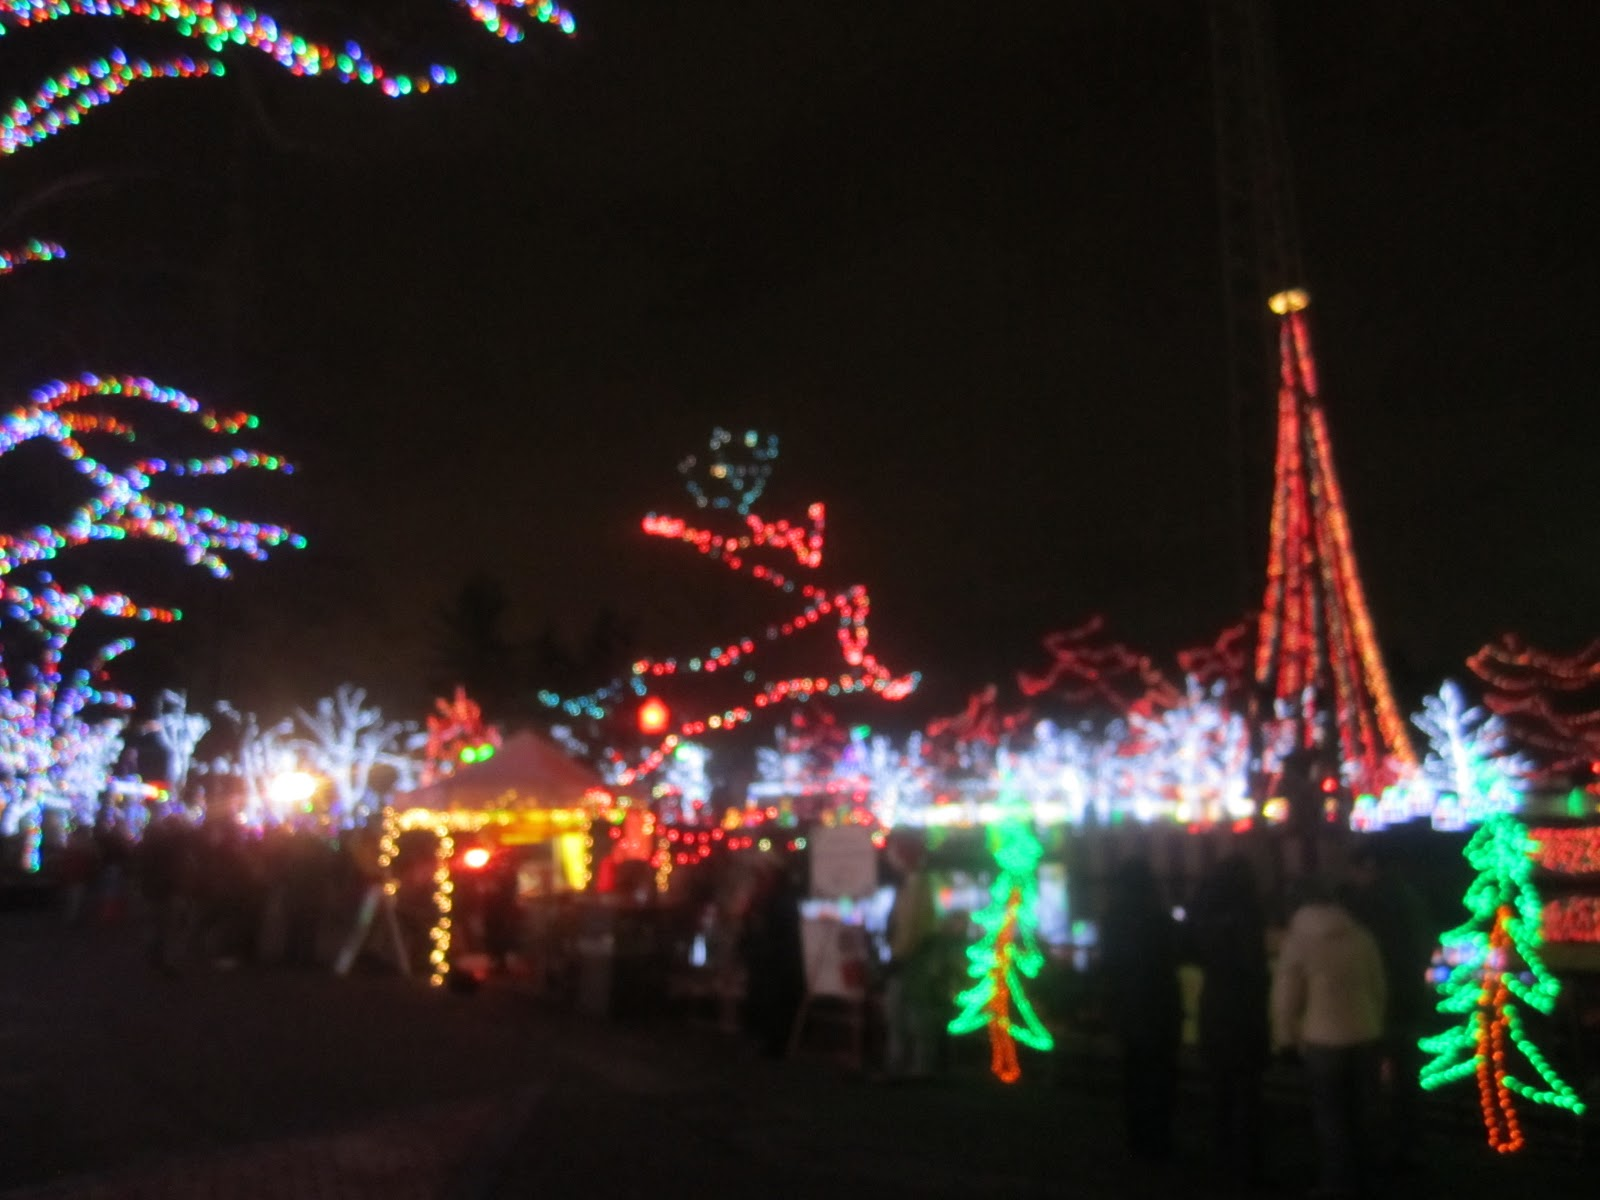 Shoot for the moon: Kennywood Holiday Lights